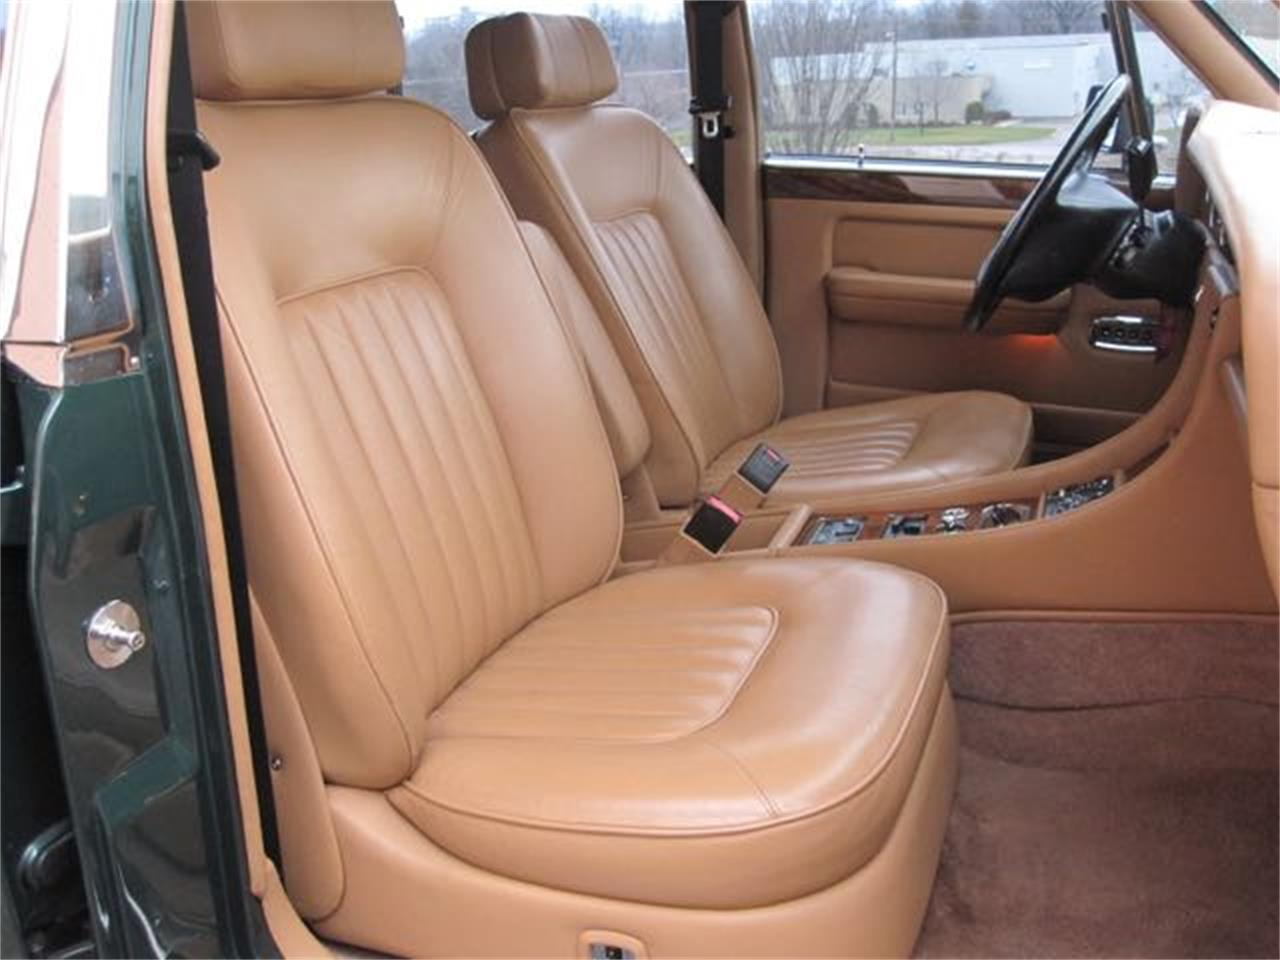 Large Picture of '92 Bentley Mulsanne S Auction Vehicle Offered by Old Is New Again - LART